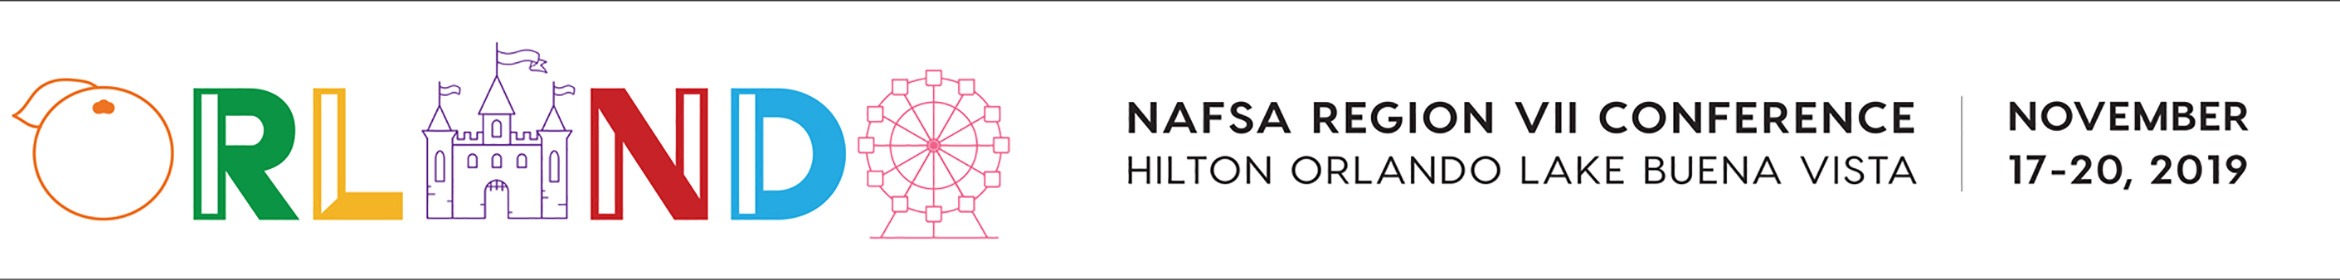 2019 NAFSA Region VII Conference Main banner